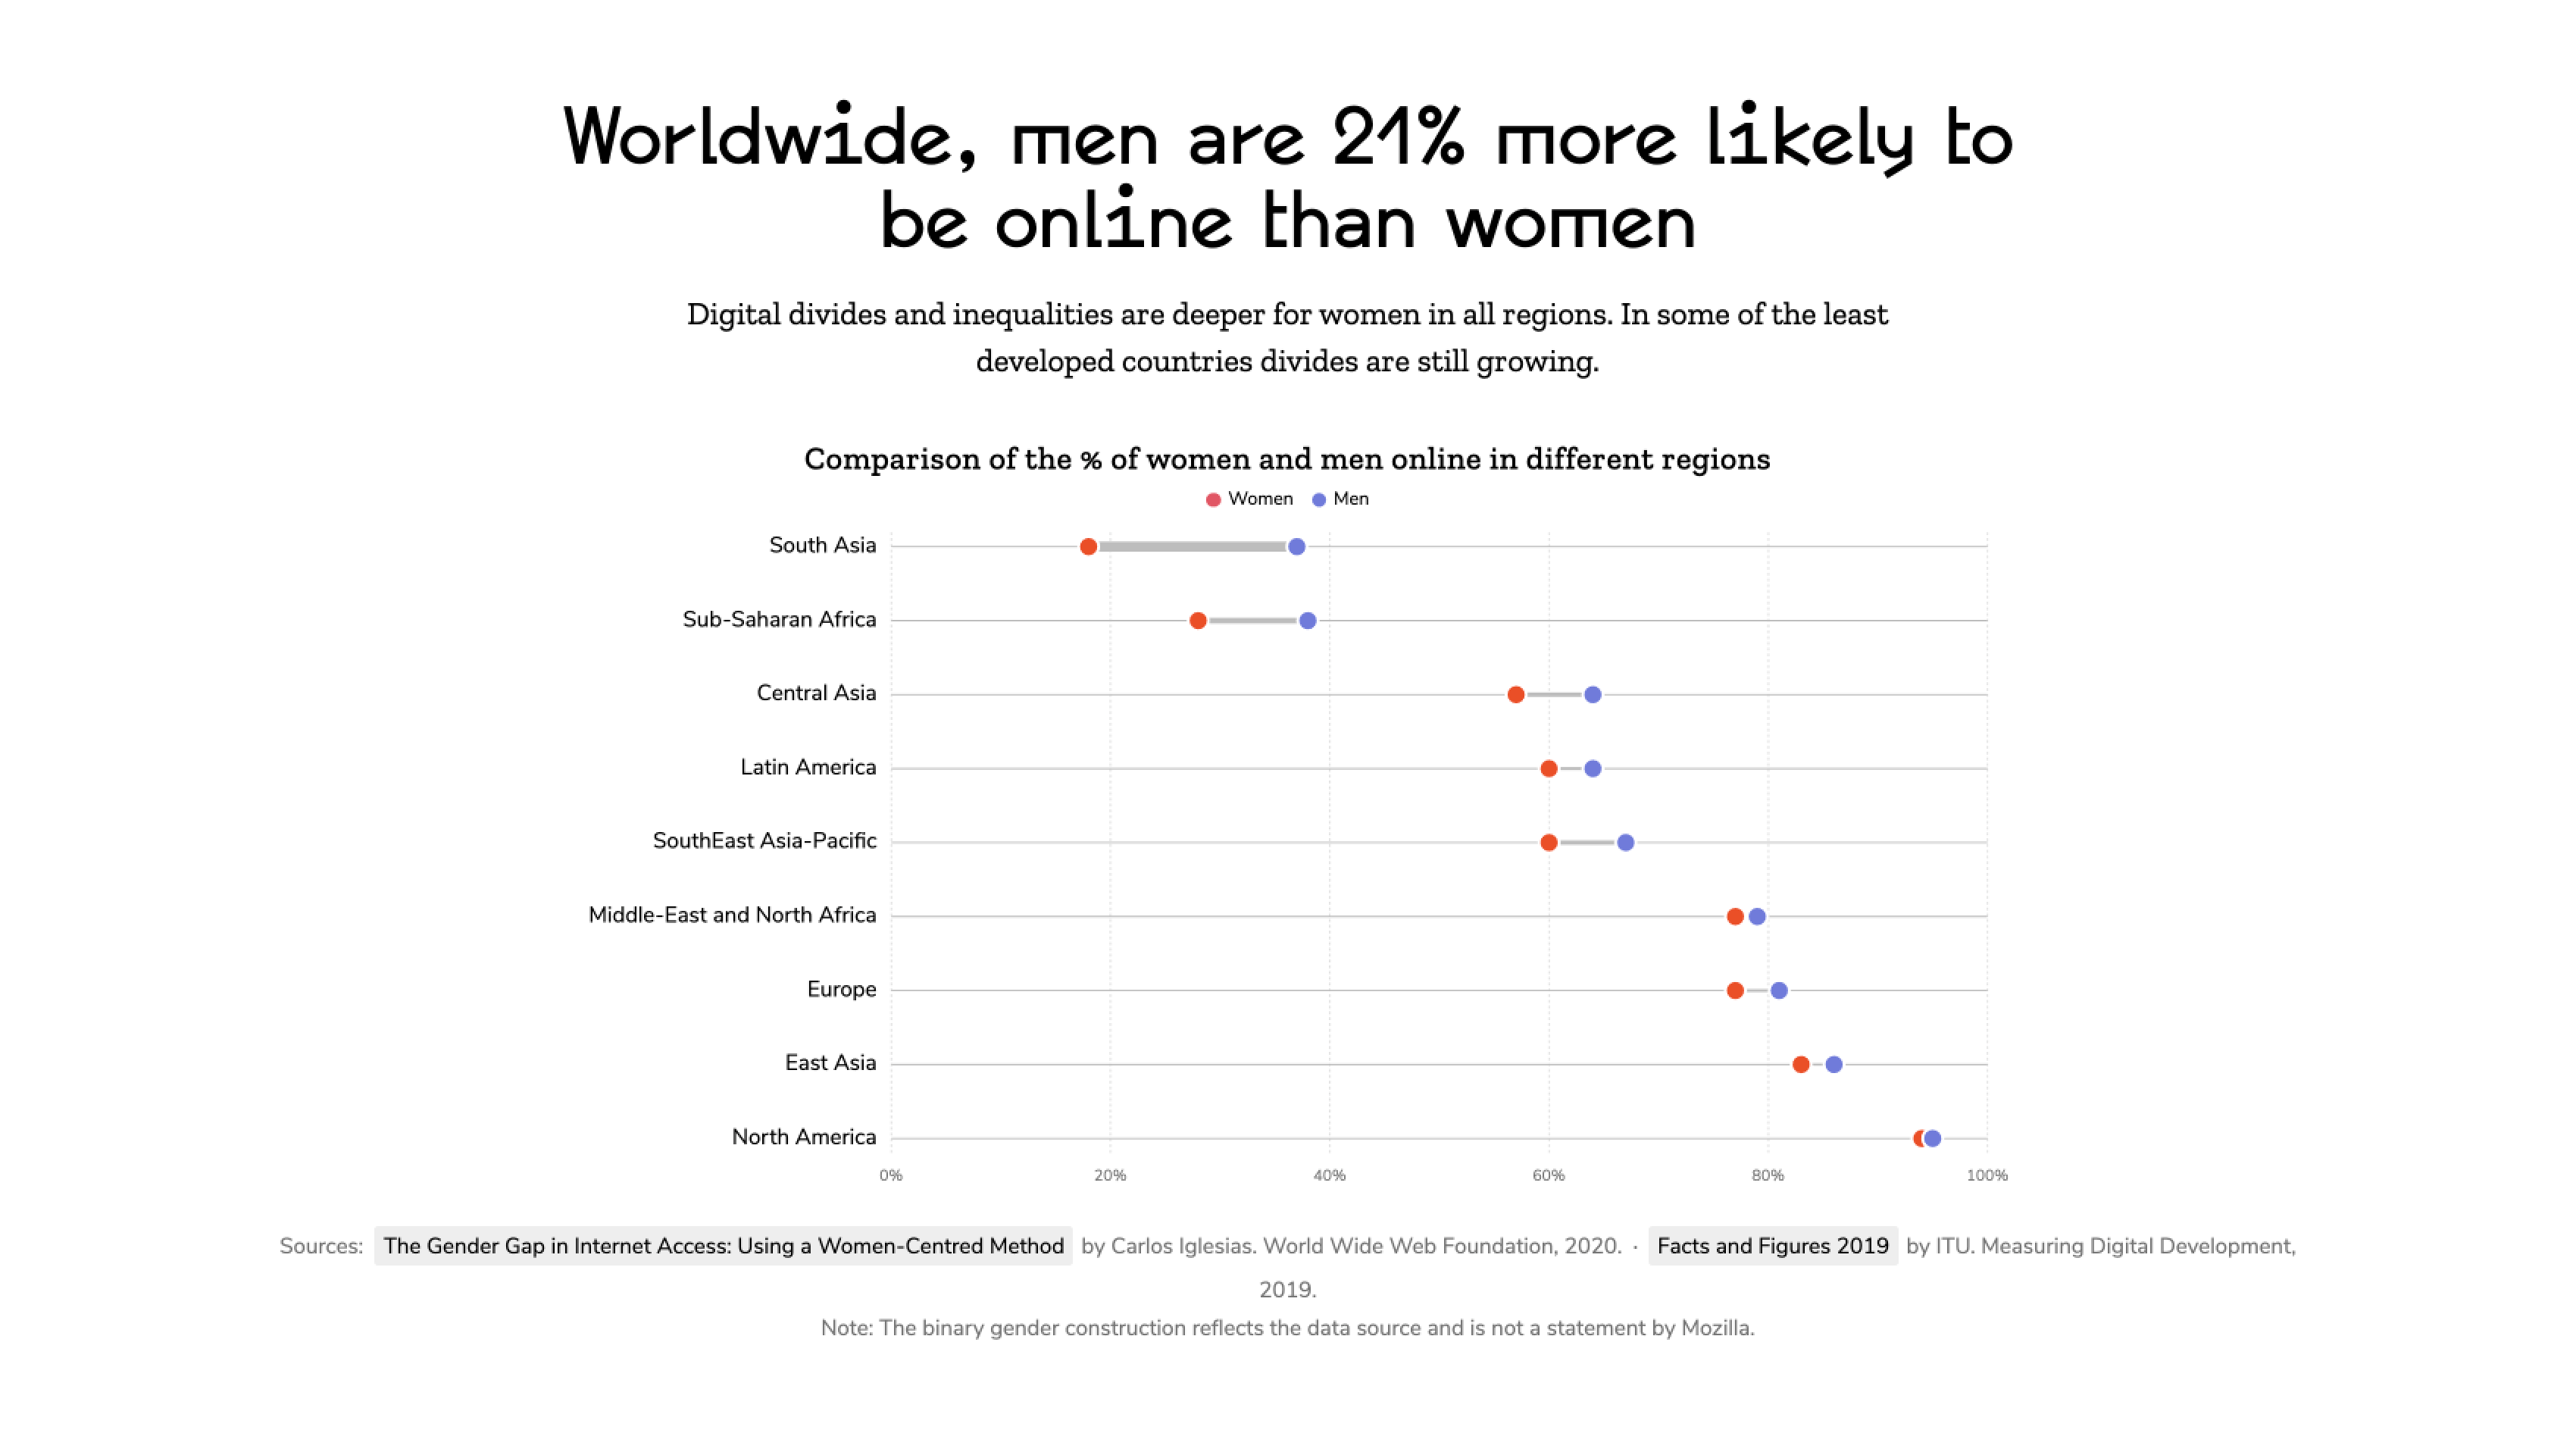 Worldwide, men are 21% more likely to be on line than women.